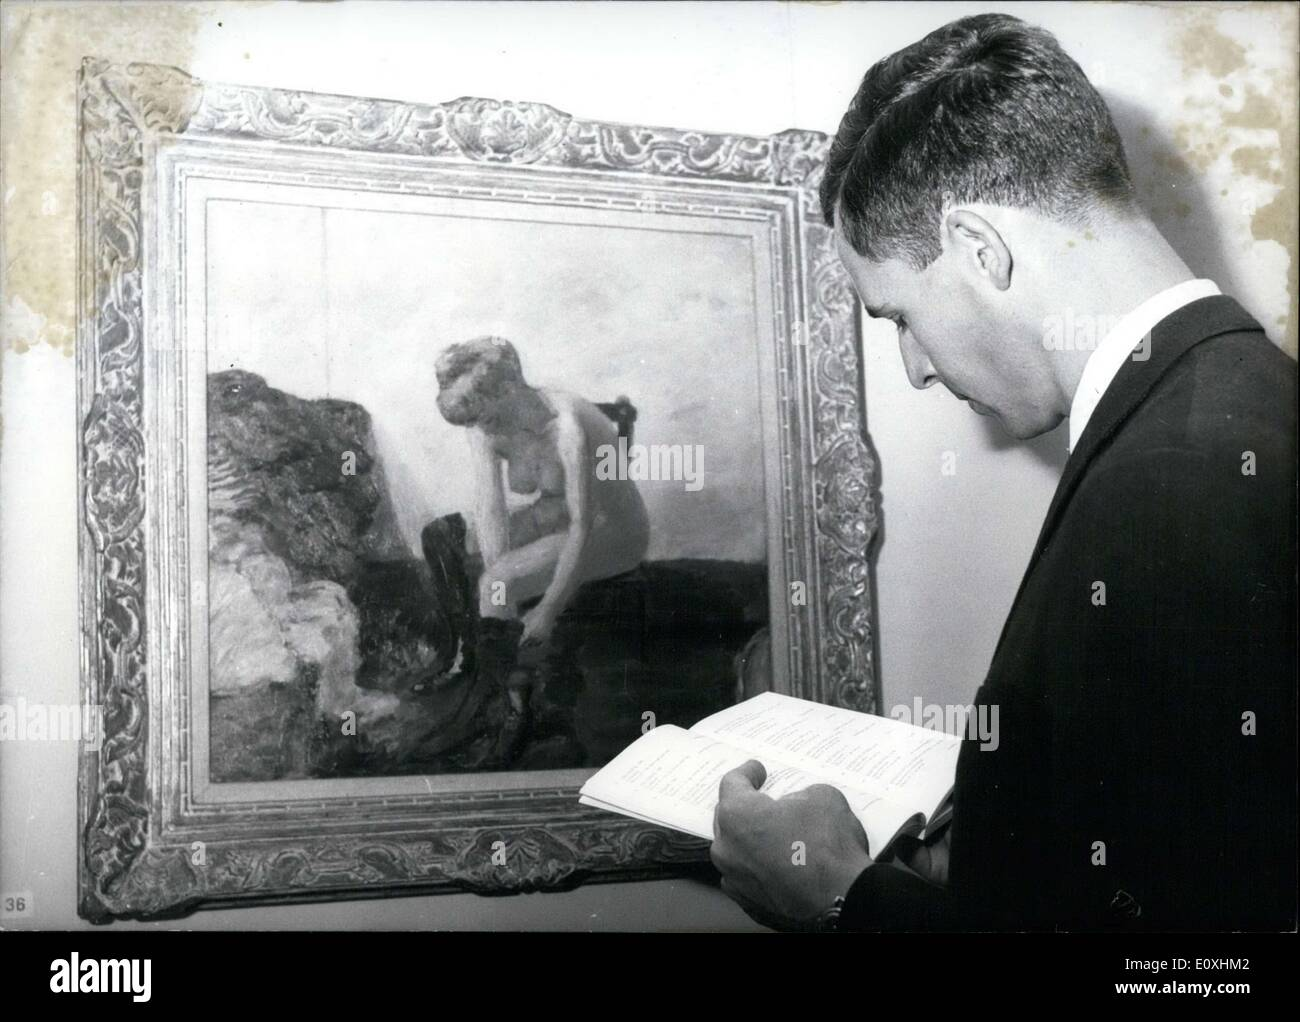 Oct. 22, 1966 - An exhibition of famed French painter Pierre Bonnard was shown at the Munich House of Art on the anniversary of - Stock Image